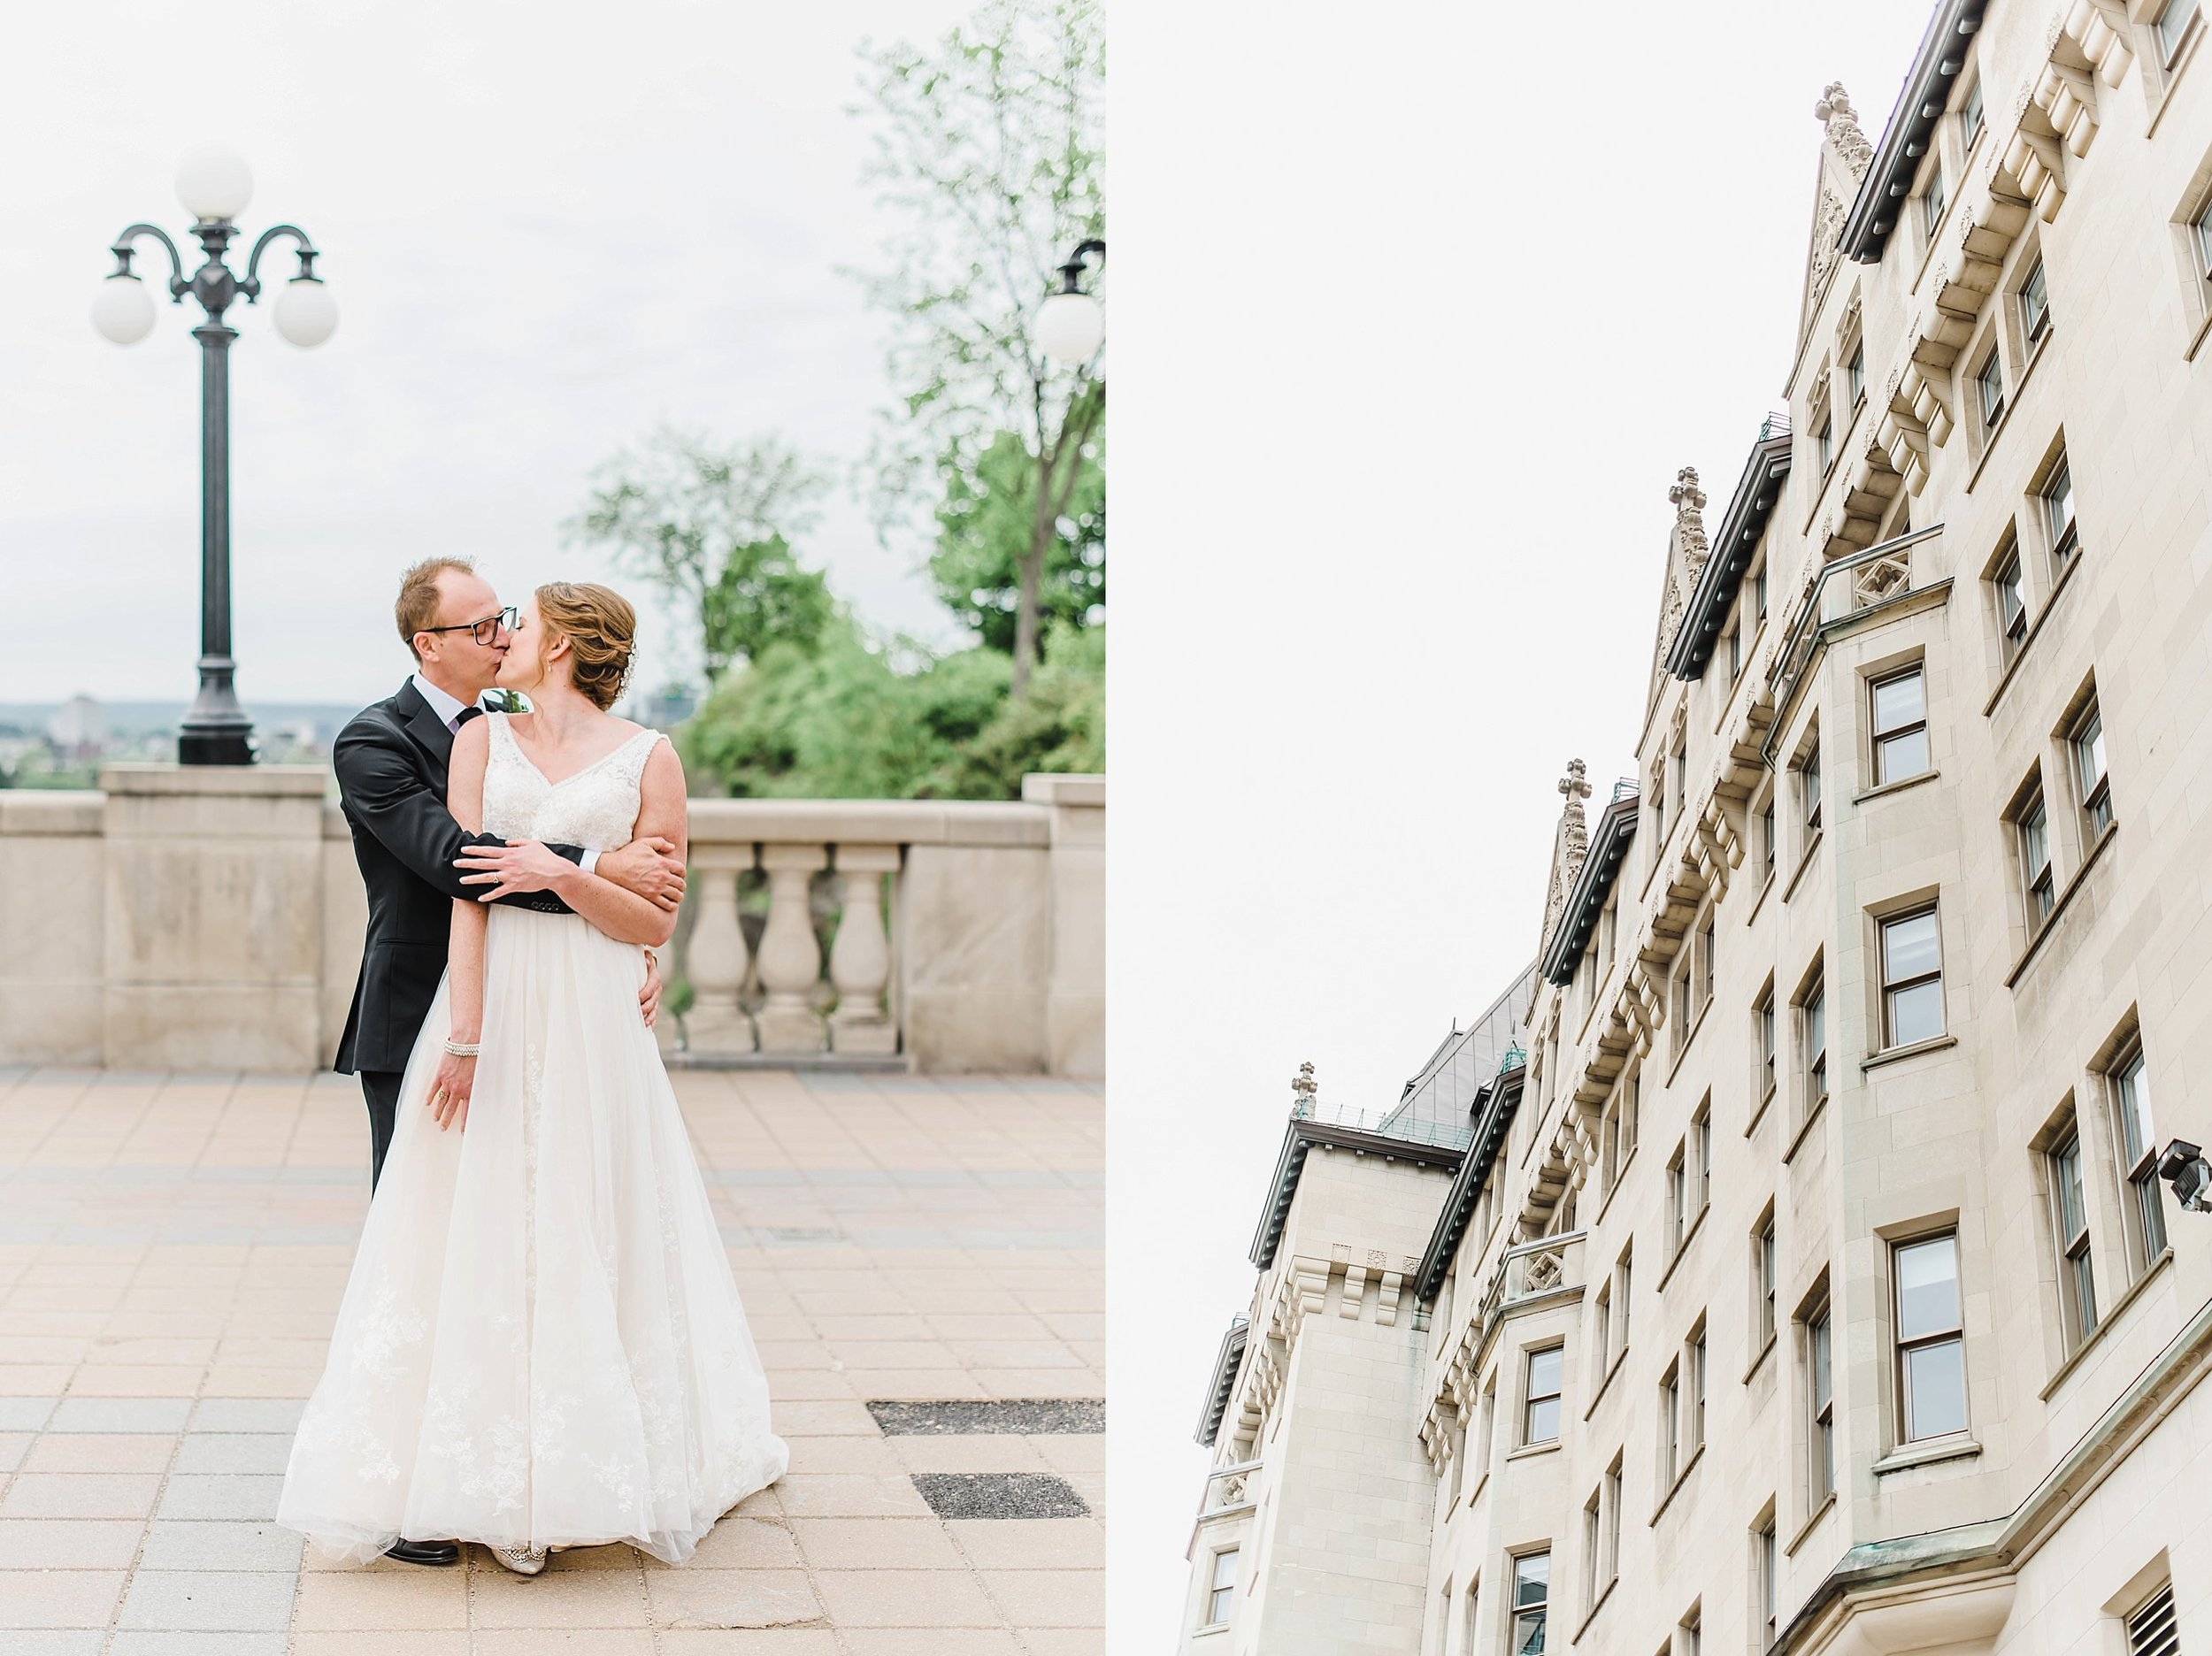 light airy indie fine art ottawa wedding photographer | Ali and Batoul Photography_0344.jpg